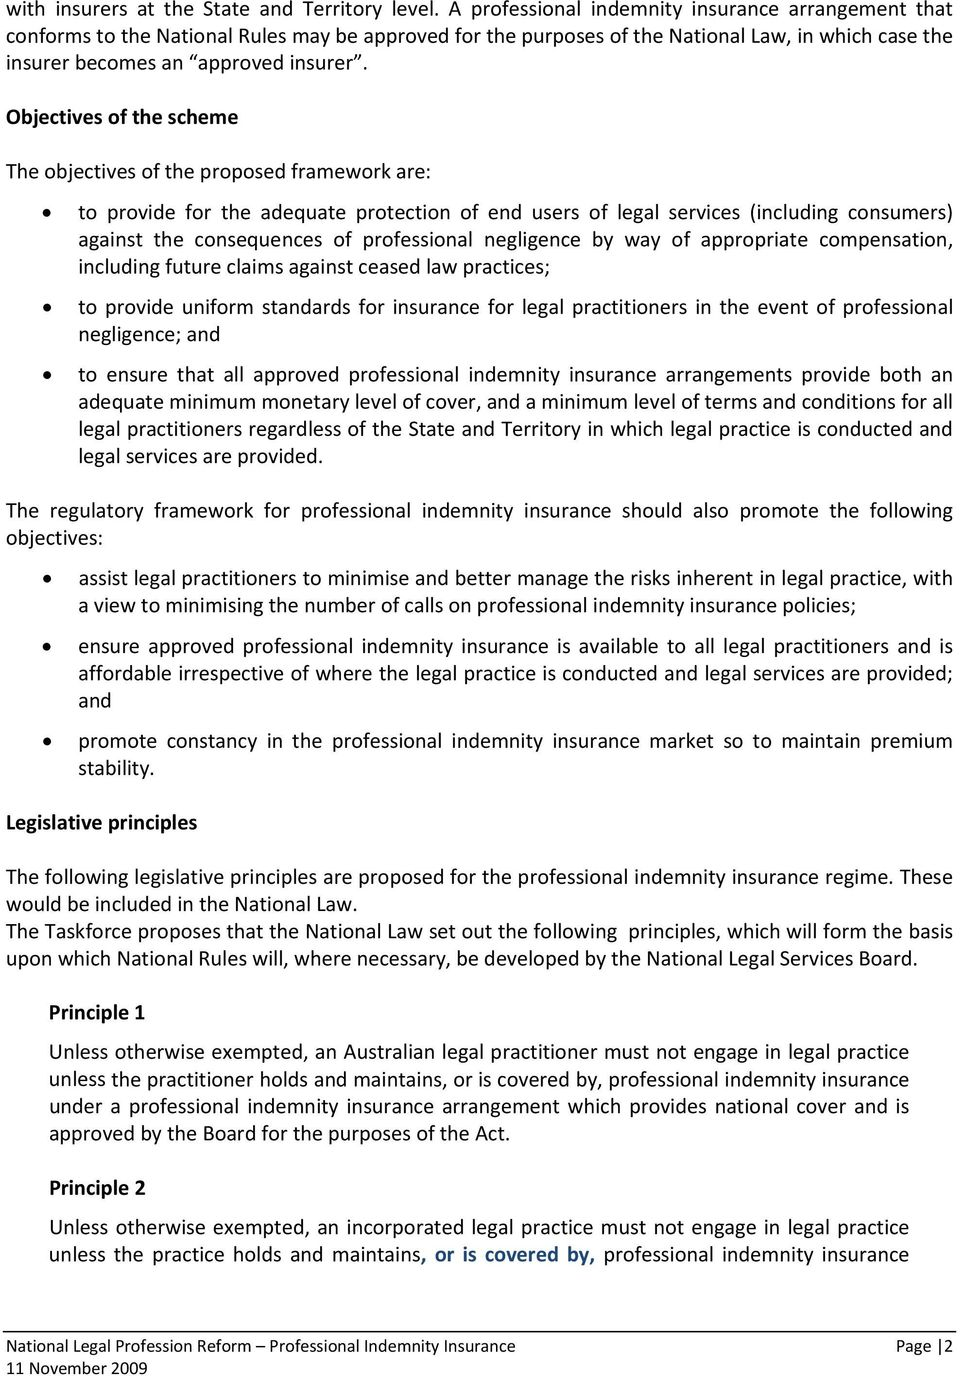 Objectives of the scheme The objectives of the proposed framework are: to provide for the adequate protection of end users of legal services (including consumers) against the consequences of